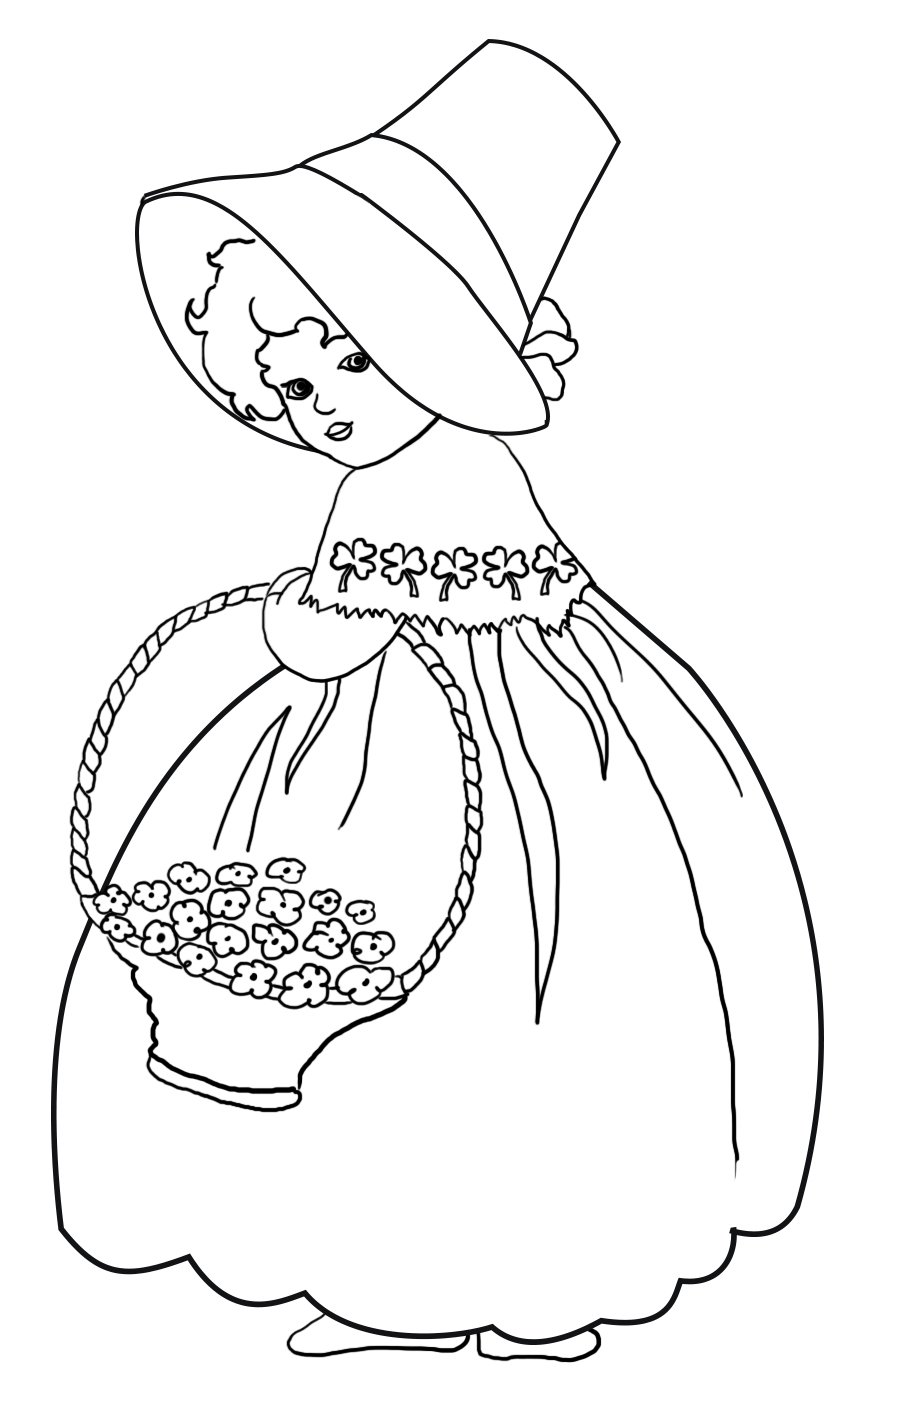 Girl with flowers and shamrock pattern for St. Patrick